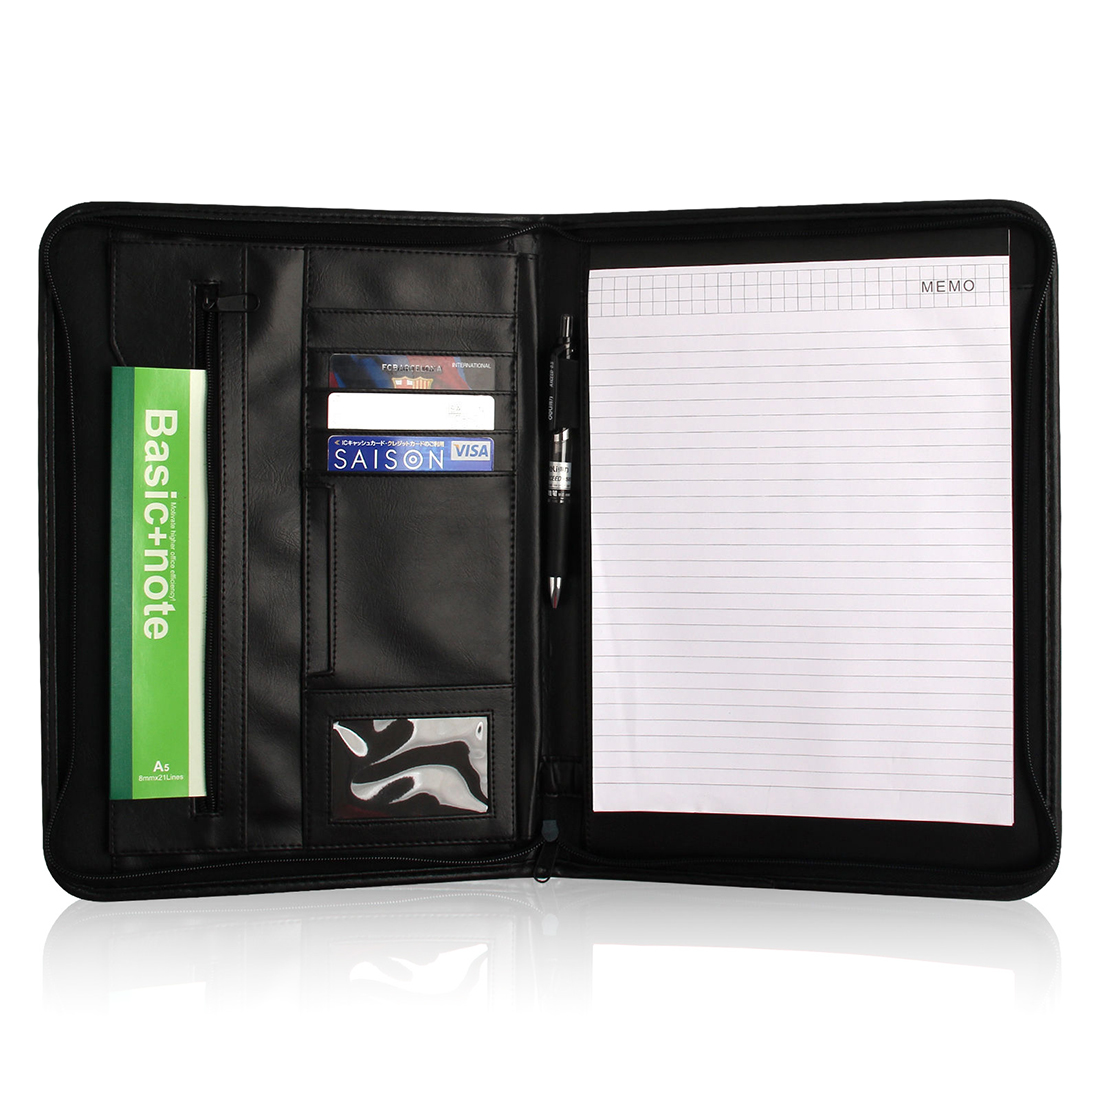 A4 Business Folder Manager Conference File Document Organizer Layout Clip Signature Agreement